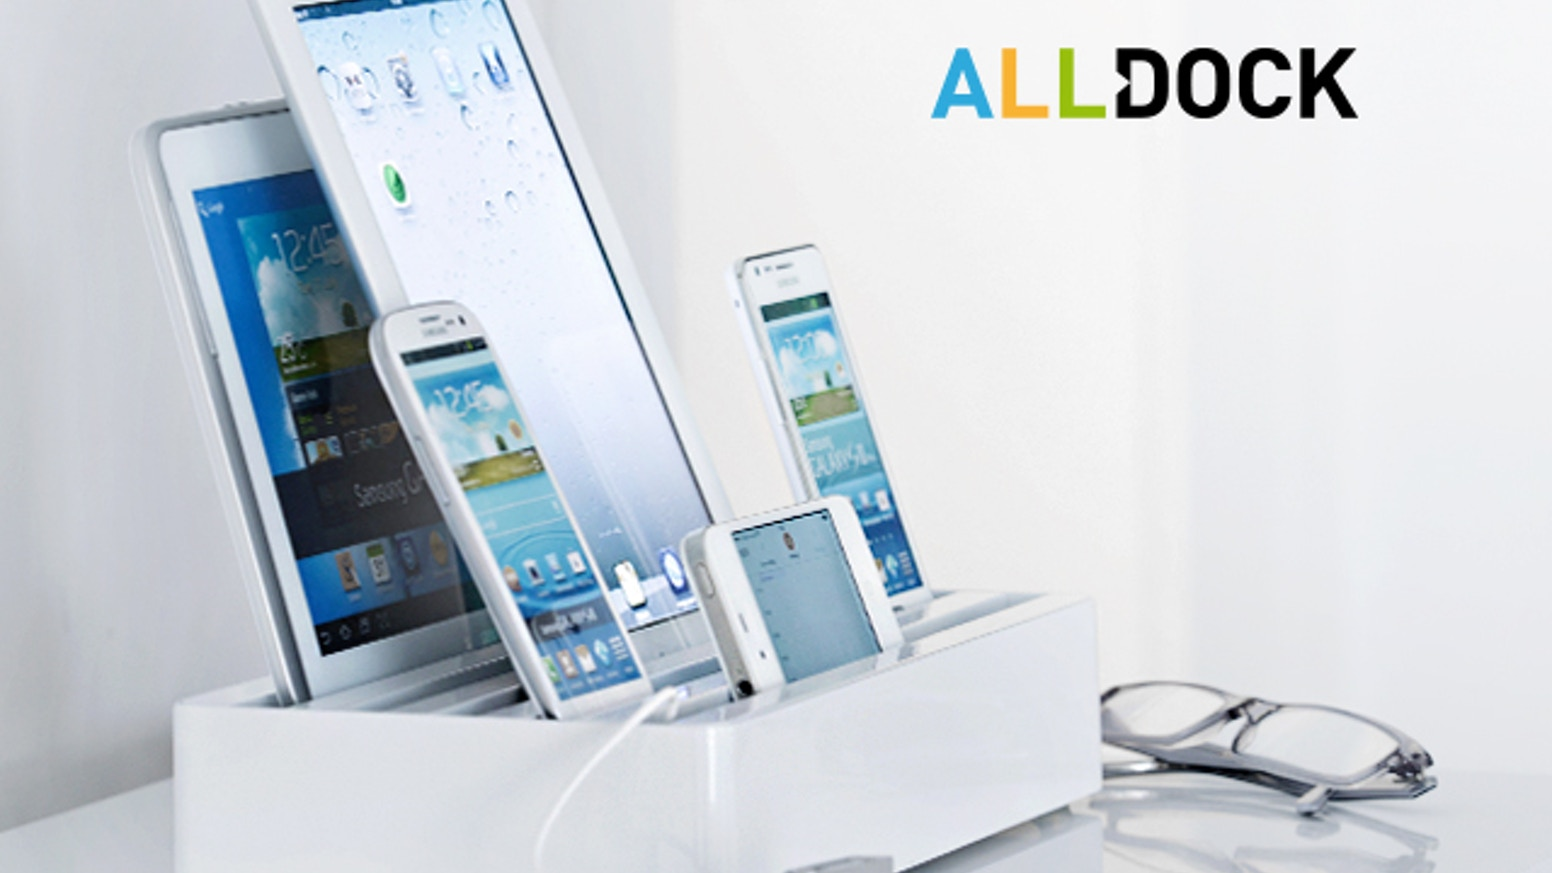 ALL-DOCK: Universal USB charger for Tablet, Smartphone, iOS by ...